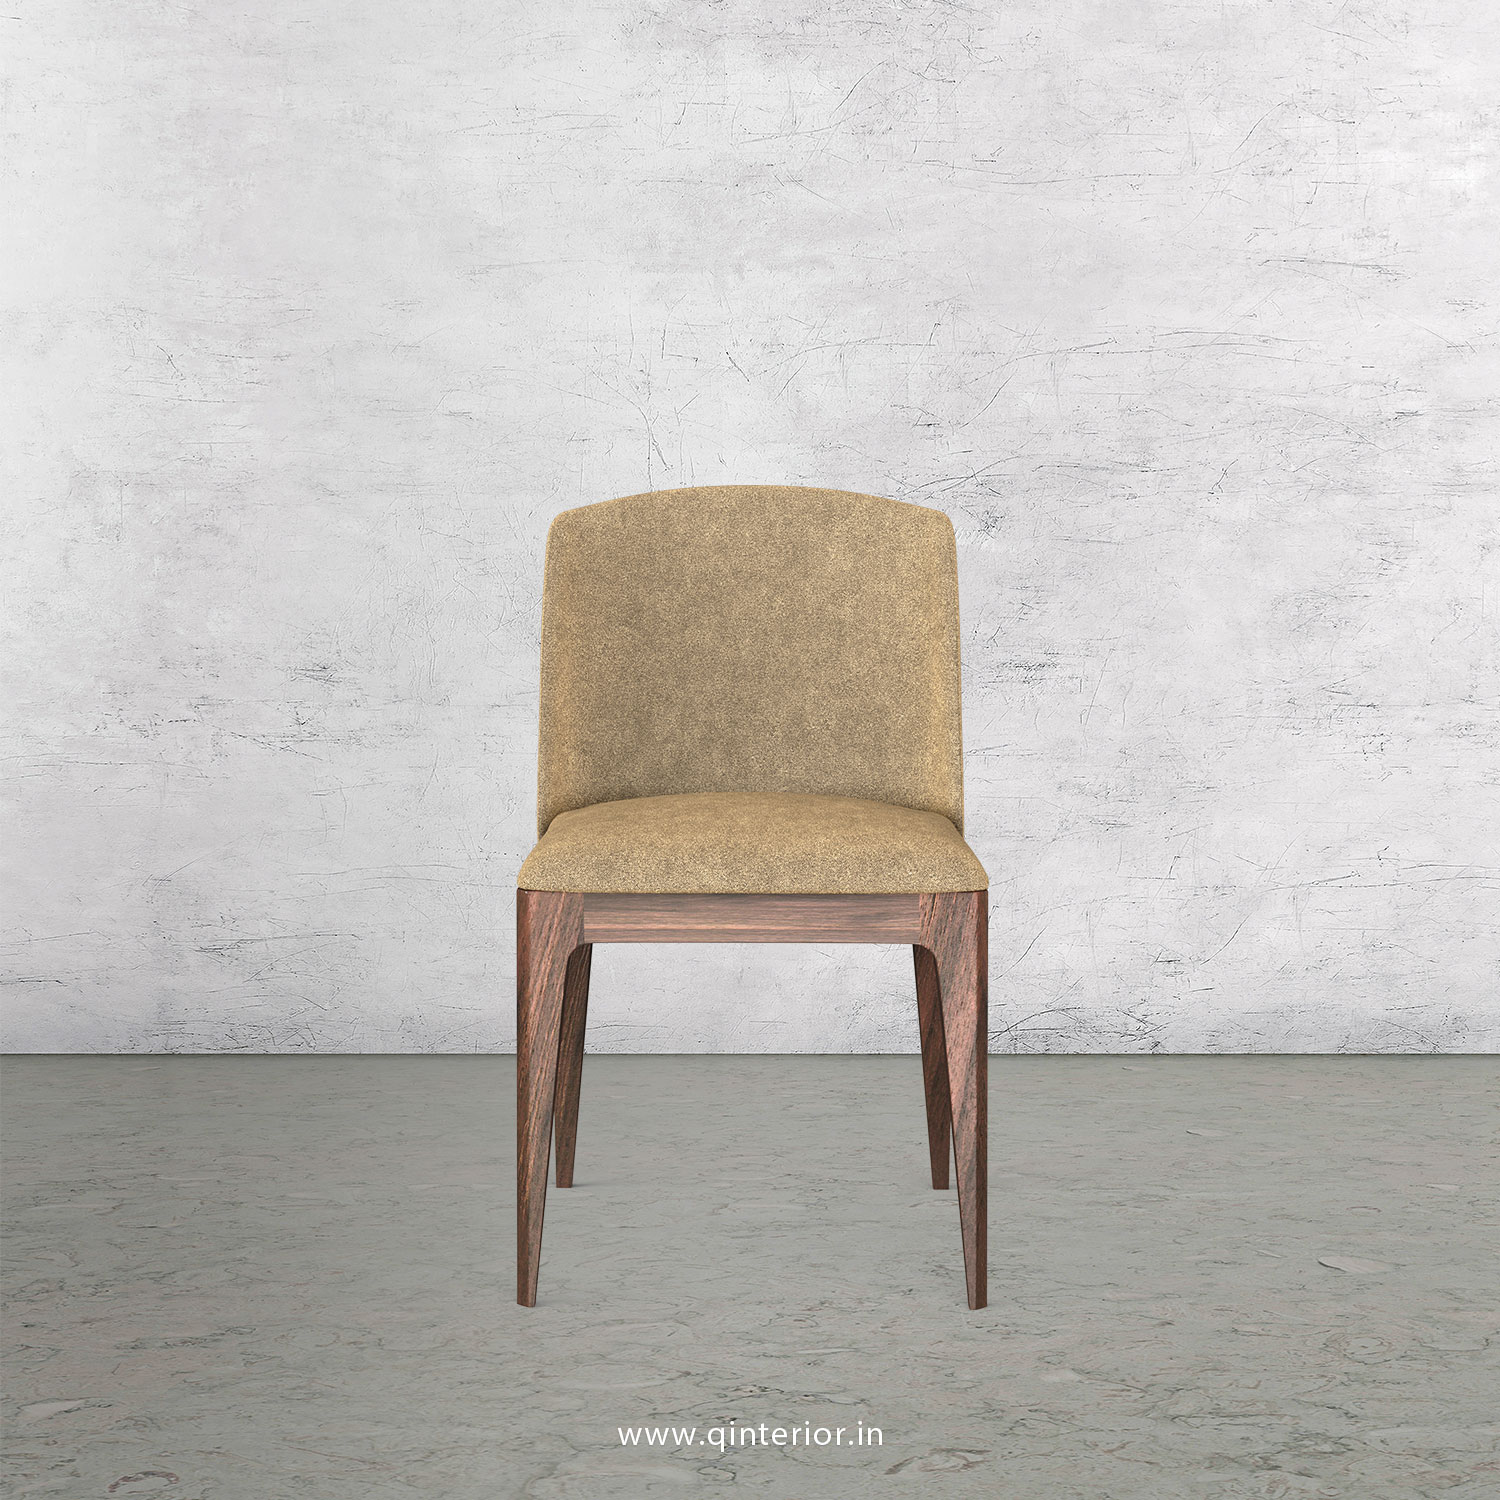 Cairo Dining Chair in Velvet Fabric - DCH001 VL03